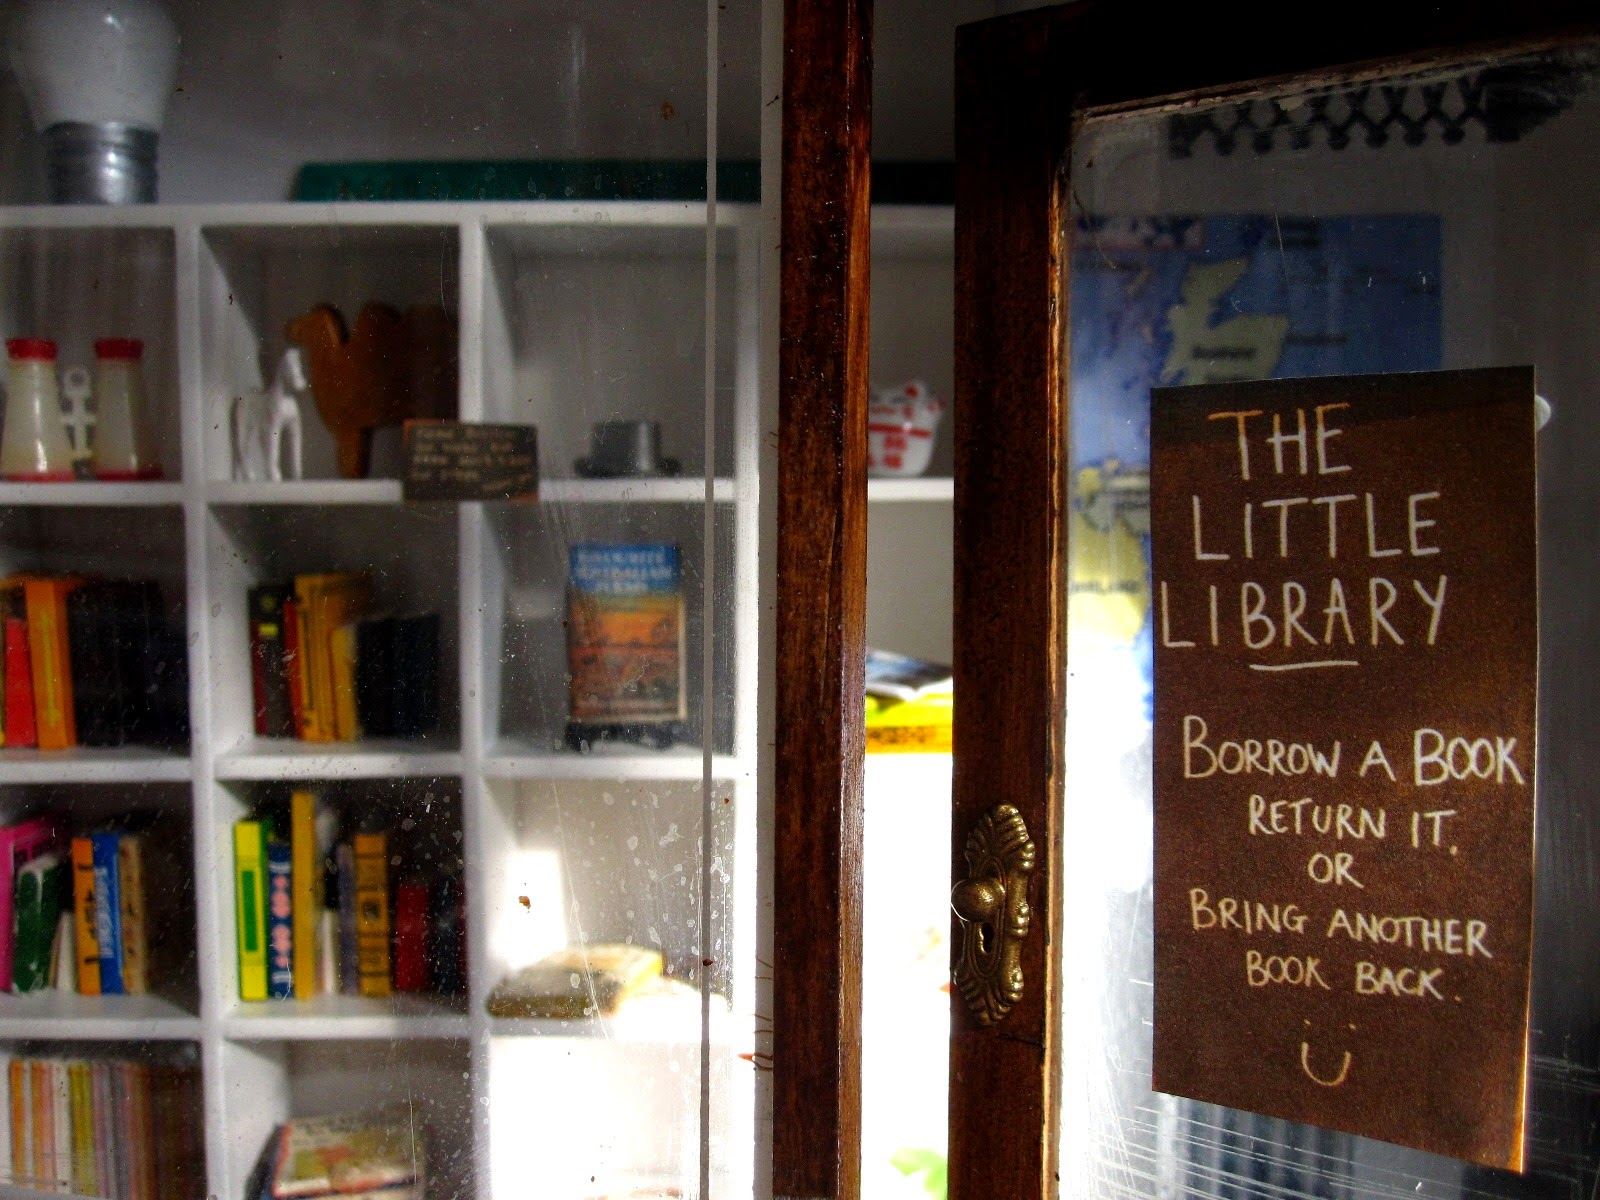 Entrance to a modern dolls' house miniature pop-up Little Library.